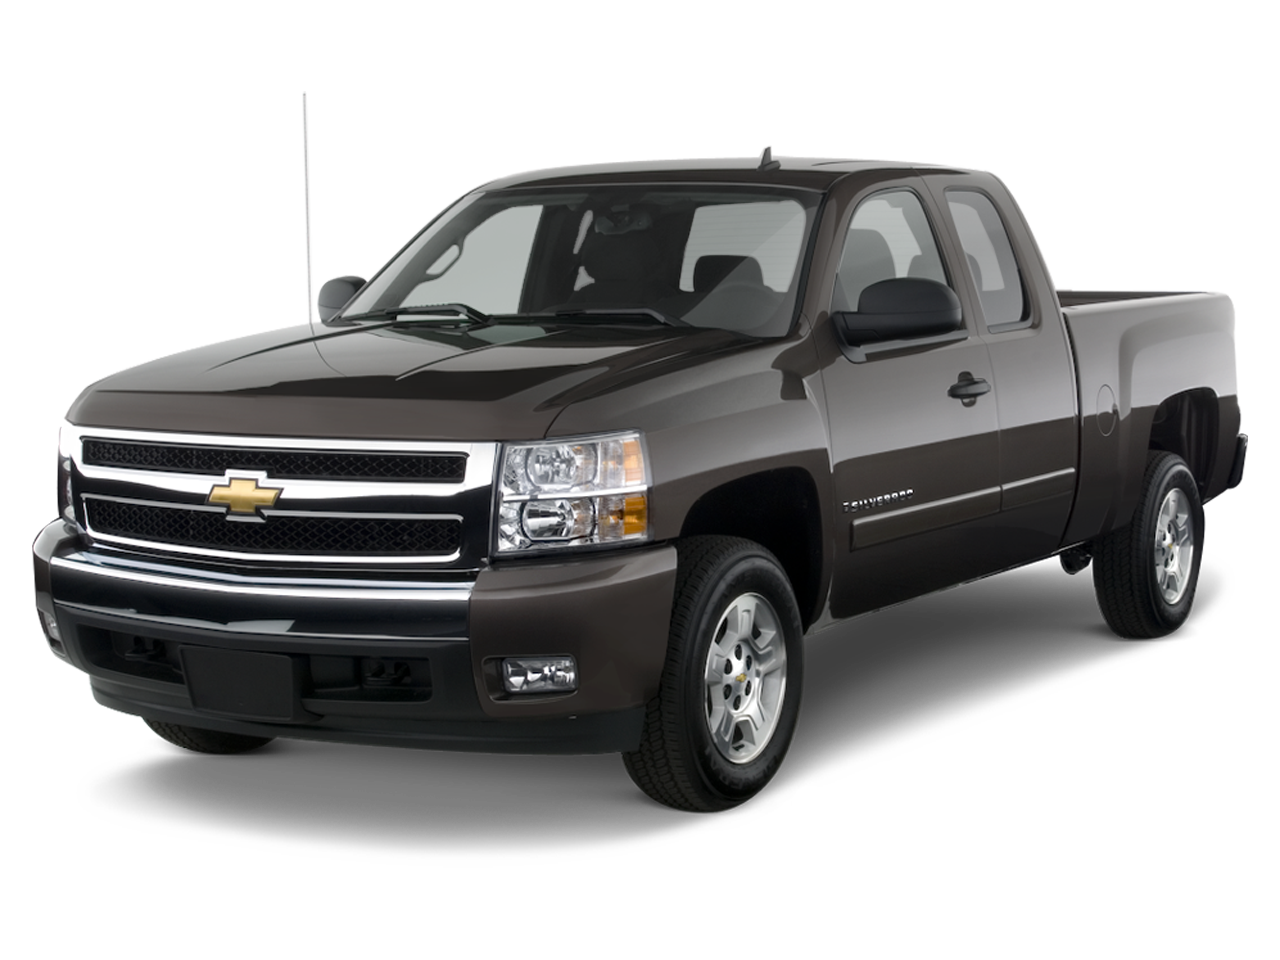 2010 chevrolet silverado 1500 lt extended cab lwb specs and features msn autos. Black Bedroom Furniture Sets. Home Design Ideas